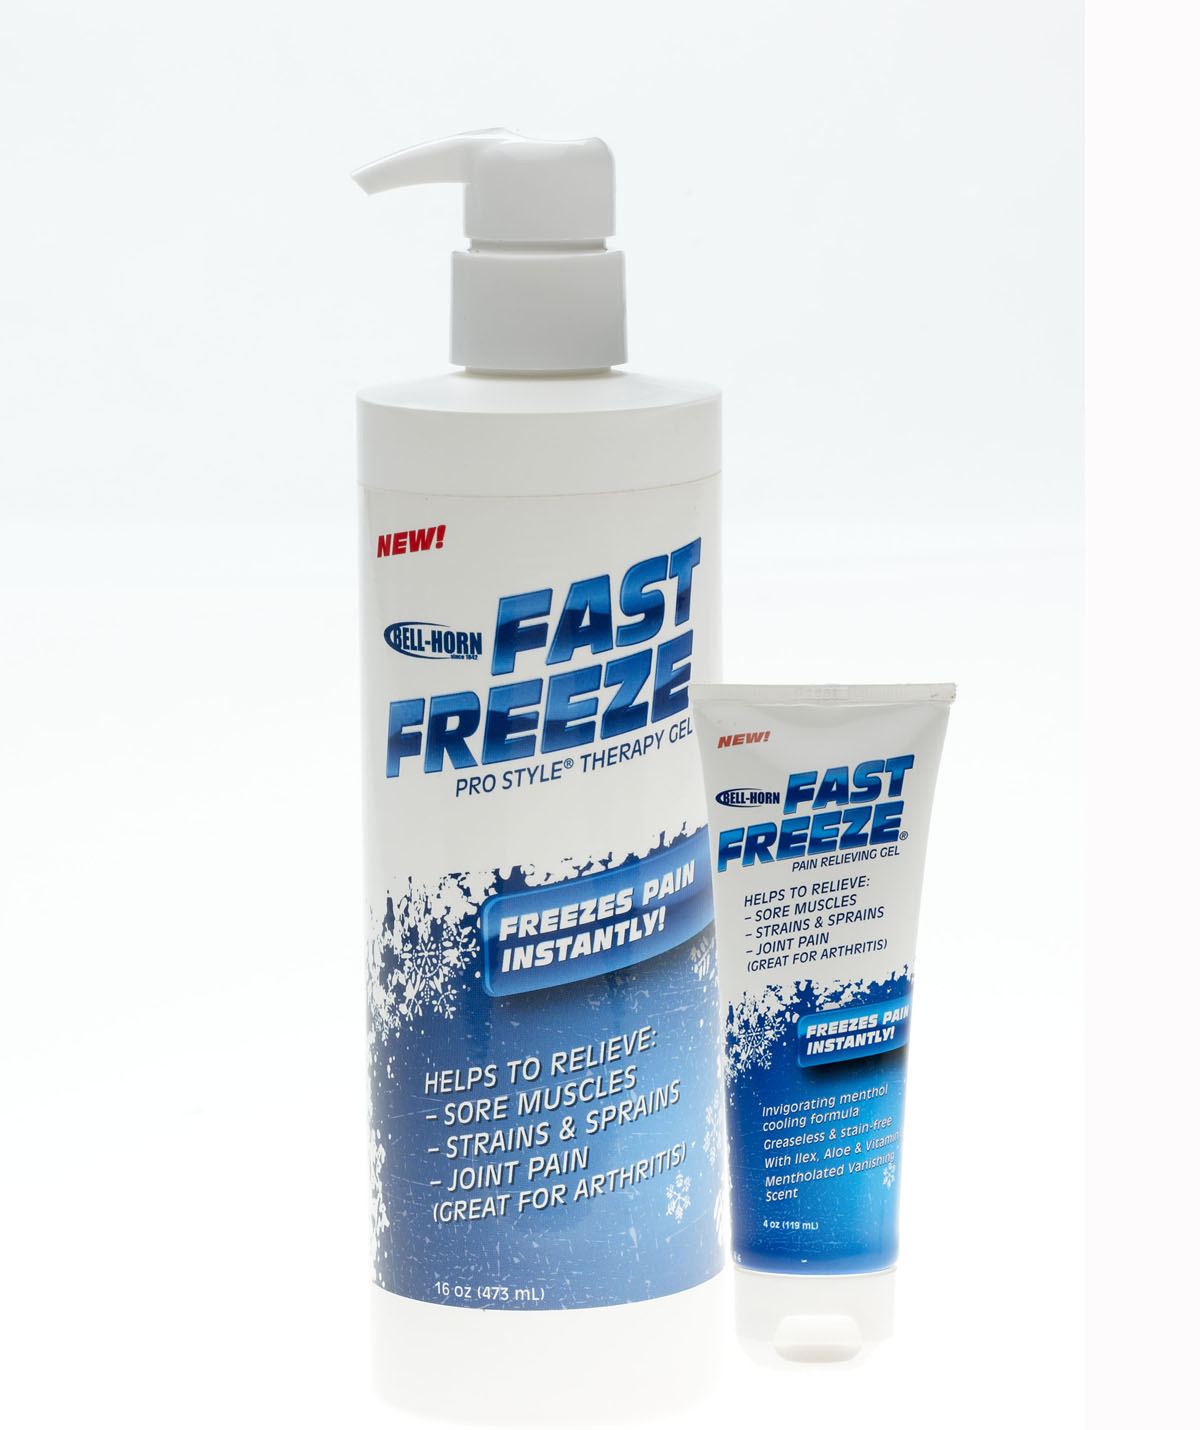 Fast Freeze Cold Therapy Pain Relief Spray, 4 oz Bottle, Each